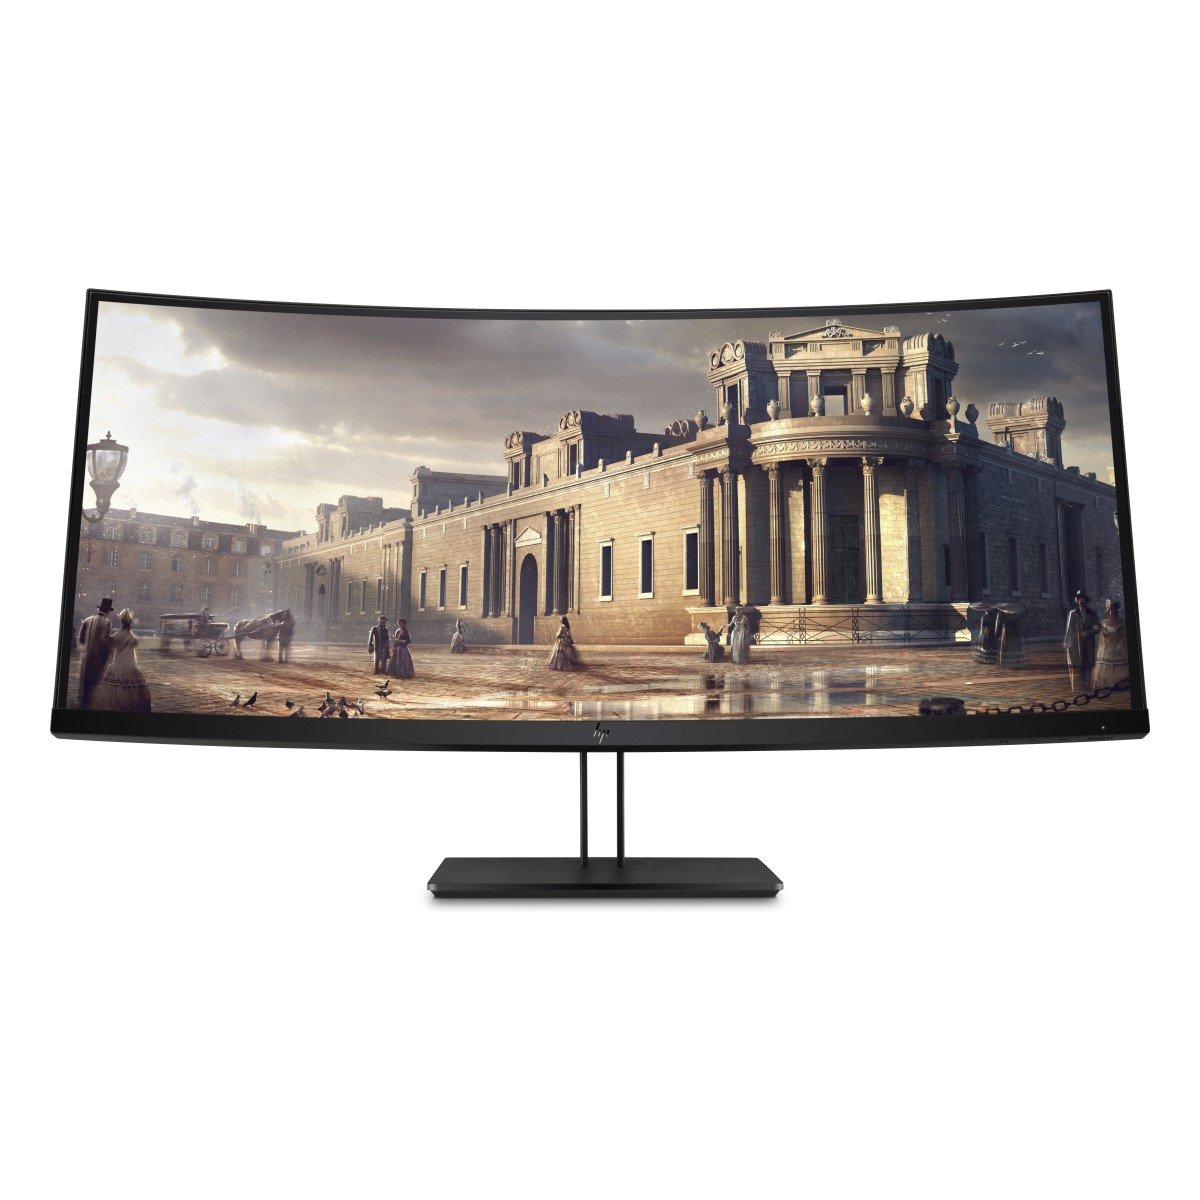 HP Z38c 38'' curved 3840x1600/300jas/HDMI/DP/3xUSB